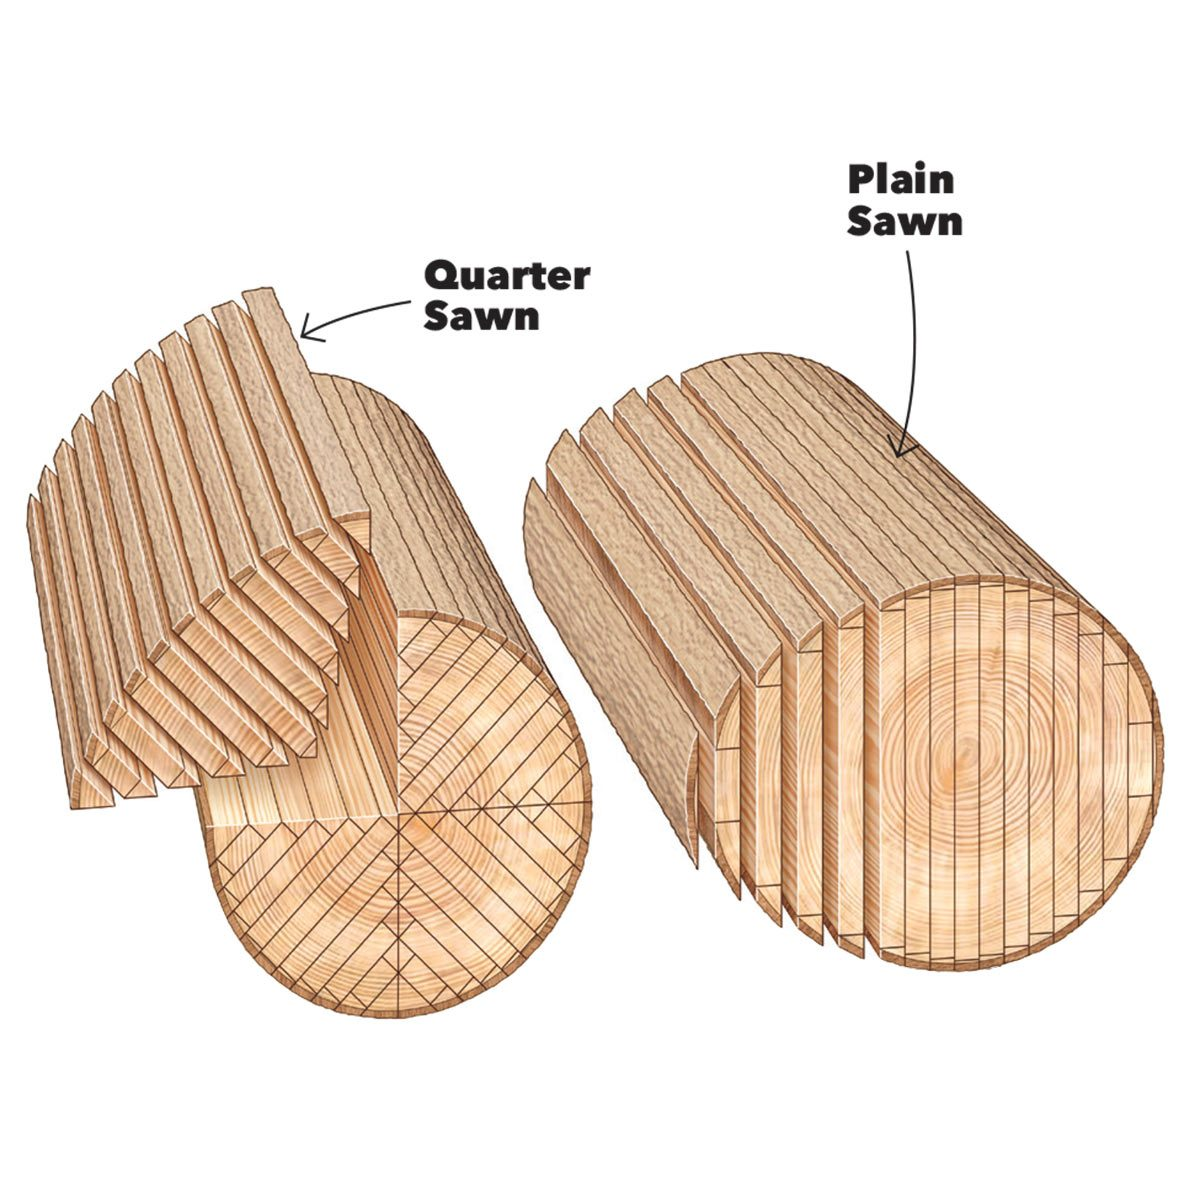 Quarter sawn and plain sawn wood